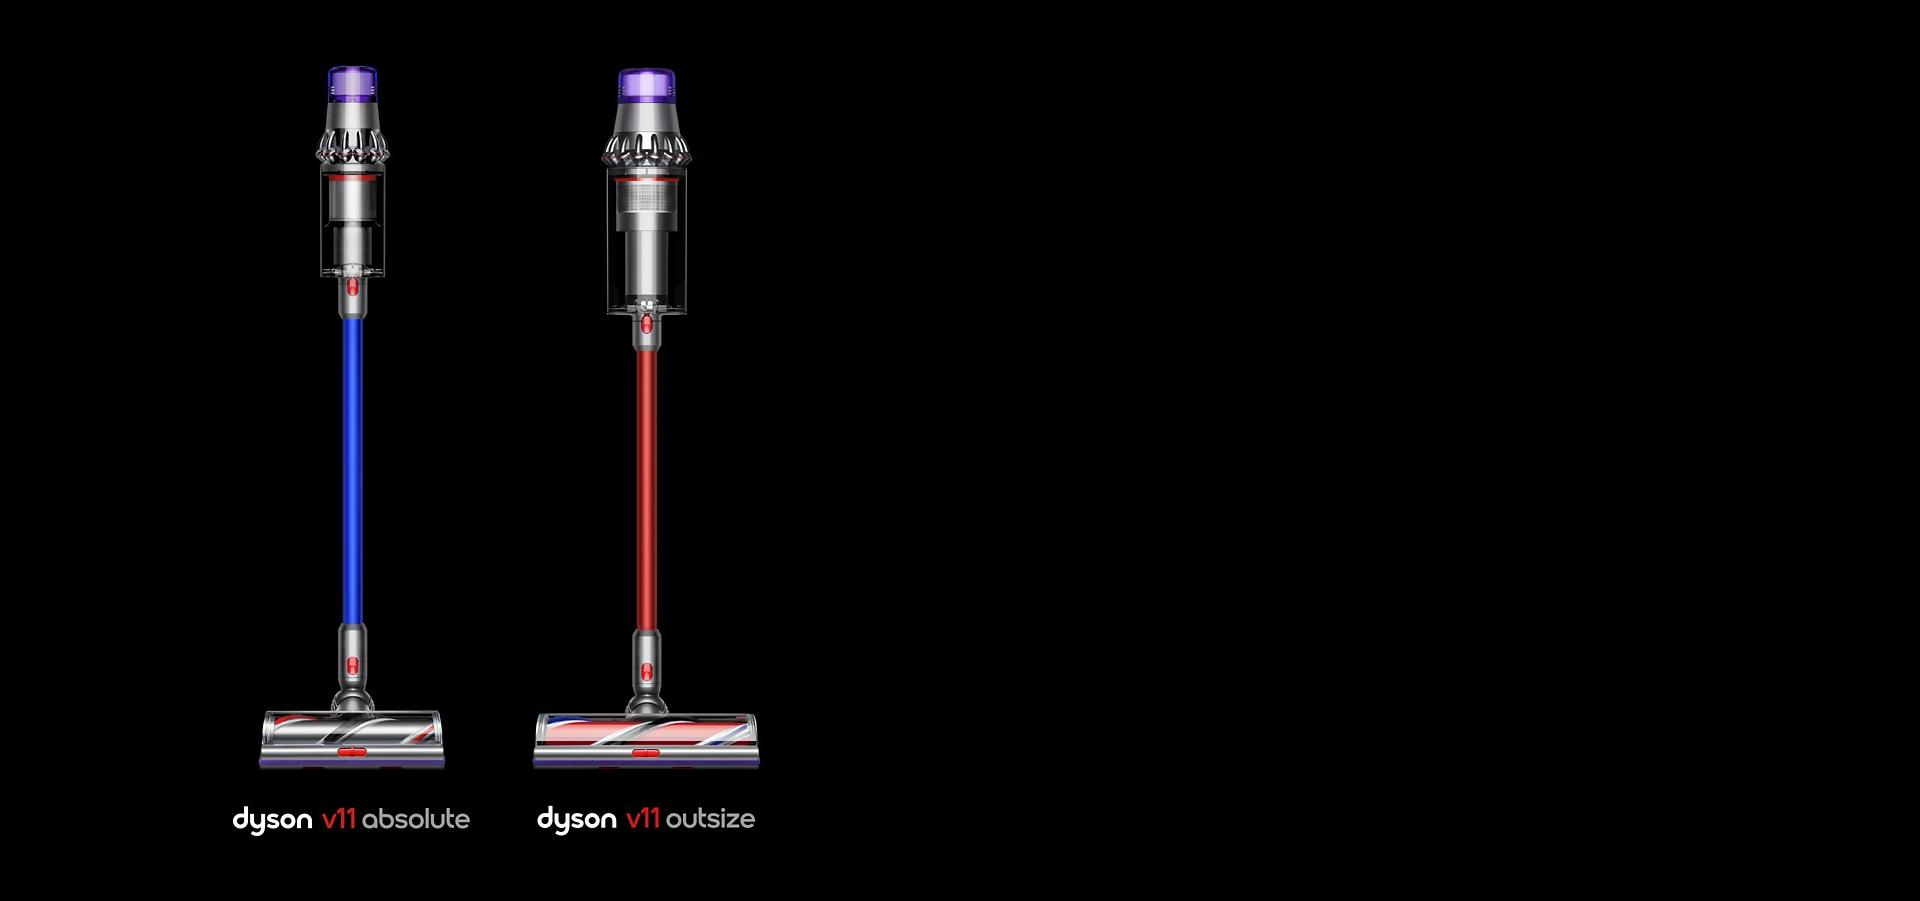 The Dyson V11™ vacuum and Dyson V11™ Outsize vacuum side by side